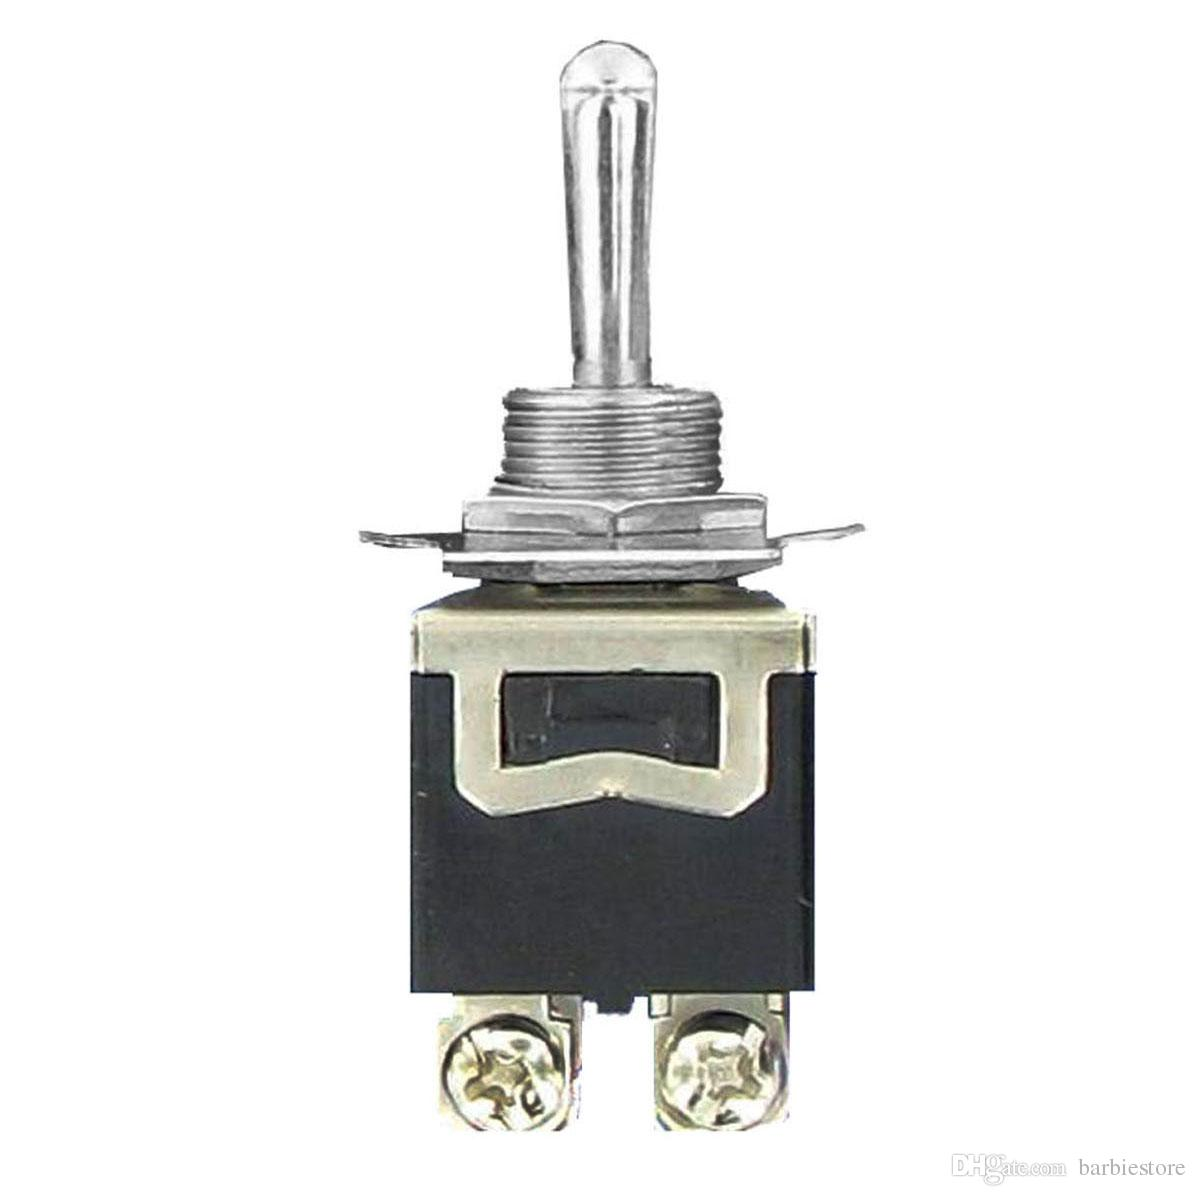 Interruptor de palanca ON / OFF de 20A 125V DPST 4 para servicio pesado con arranque impermeable B00050 BAR